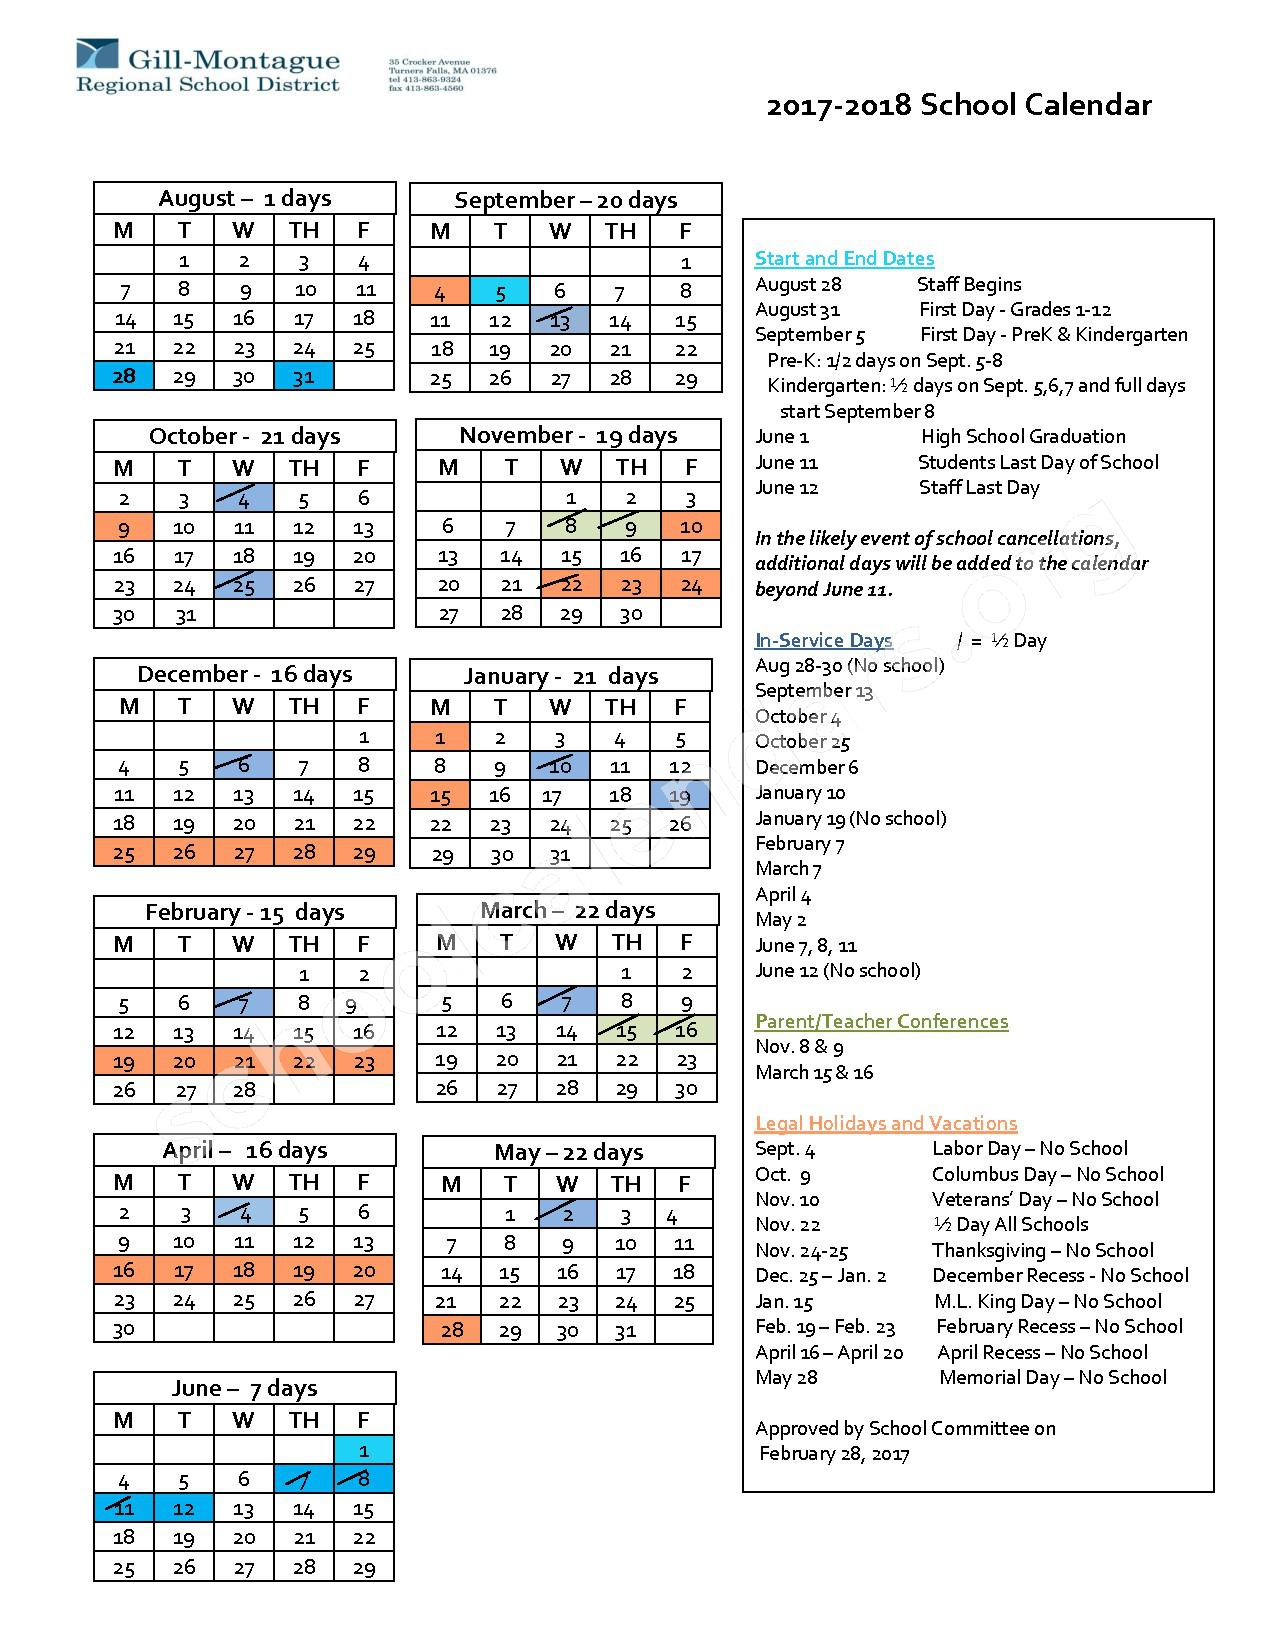 2017 - 2018 District Calendar – Gill-Montague Regional School District – page 1